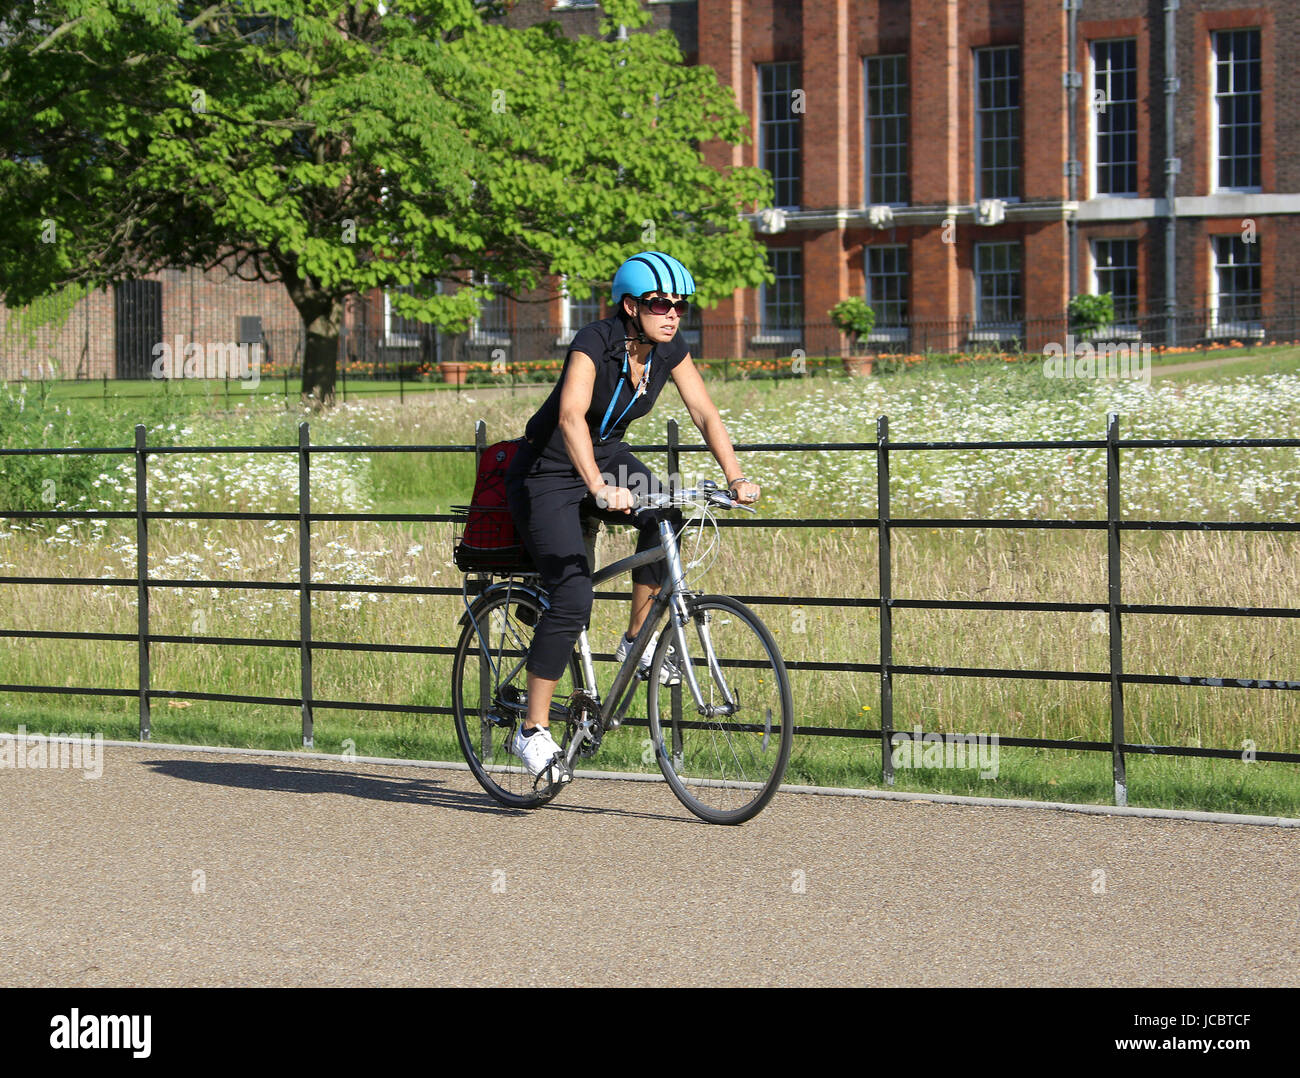 Jun14, 2017 - A cyclist rides in the sun through Kensington Gardens, in the Royal Borough of Kensington and Chelsea - Stock Image